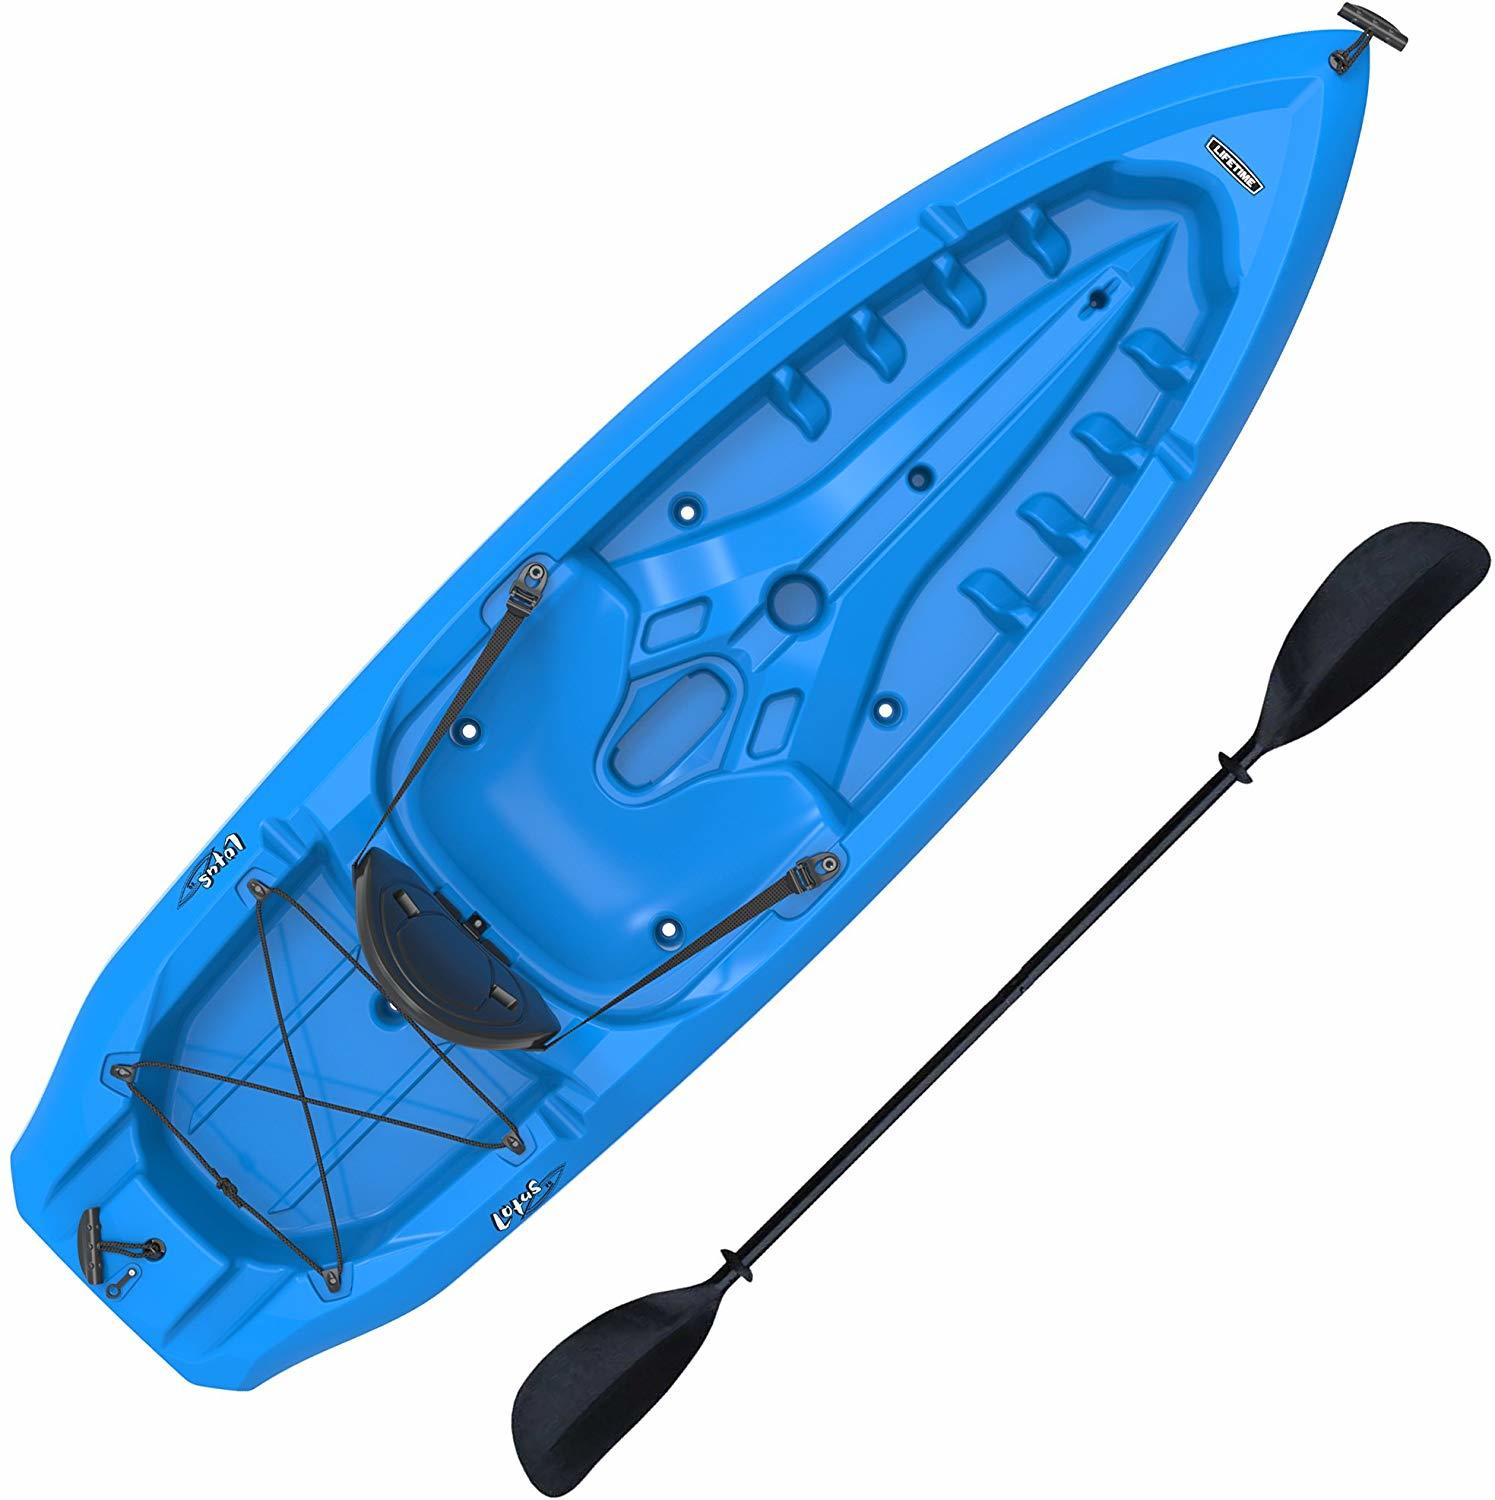 Use One of These 9 Kayak Boat for A Better Water Exploration Experience 2